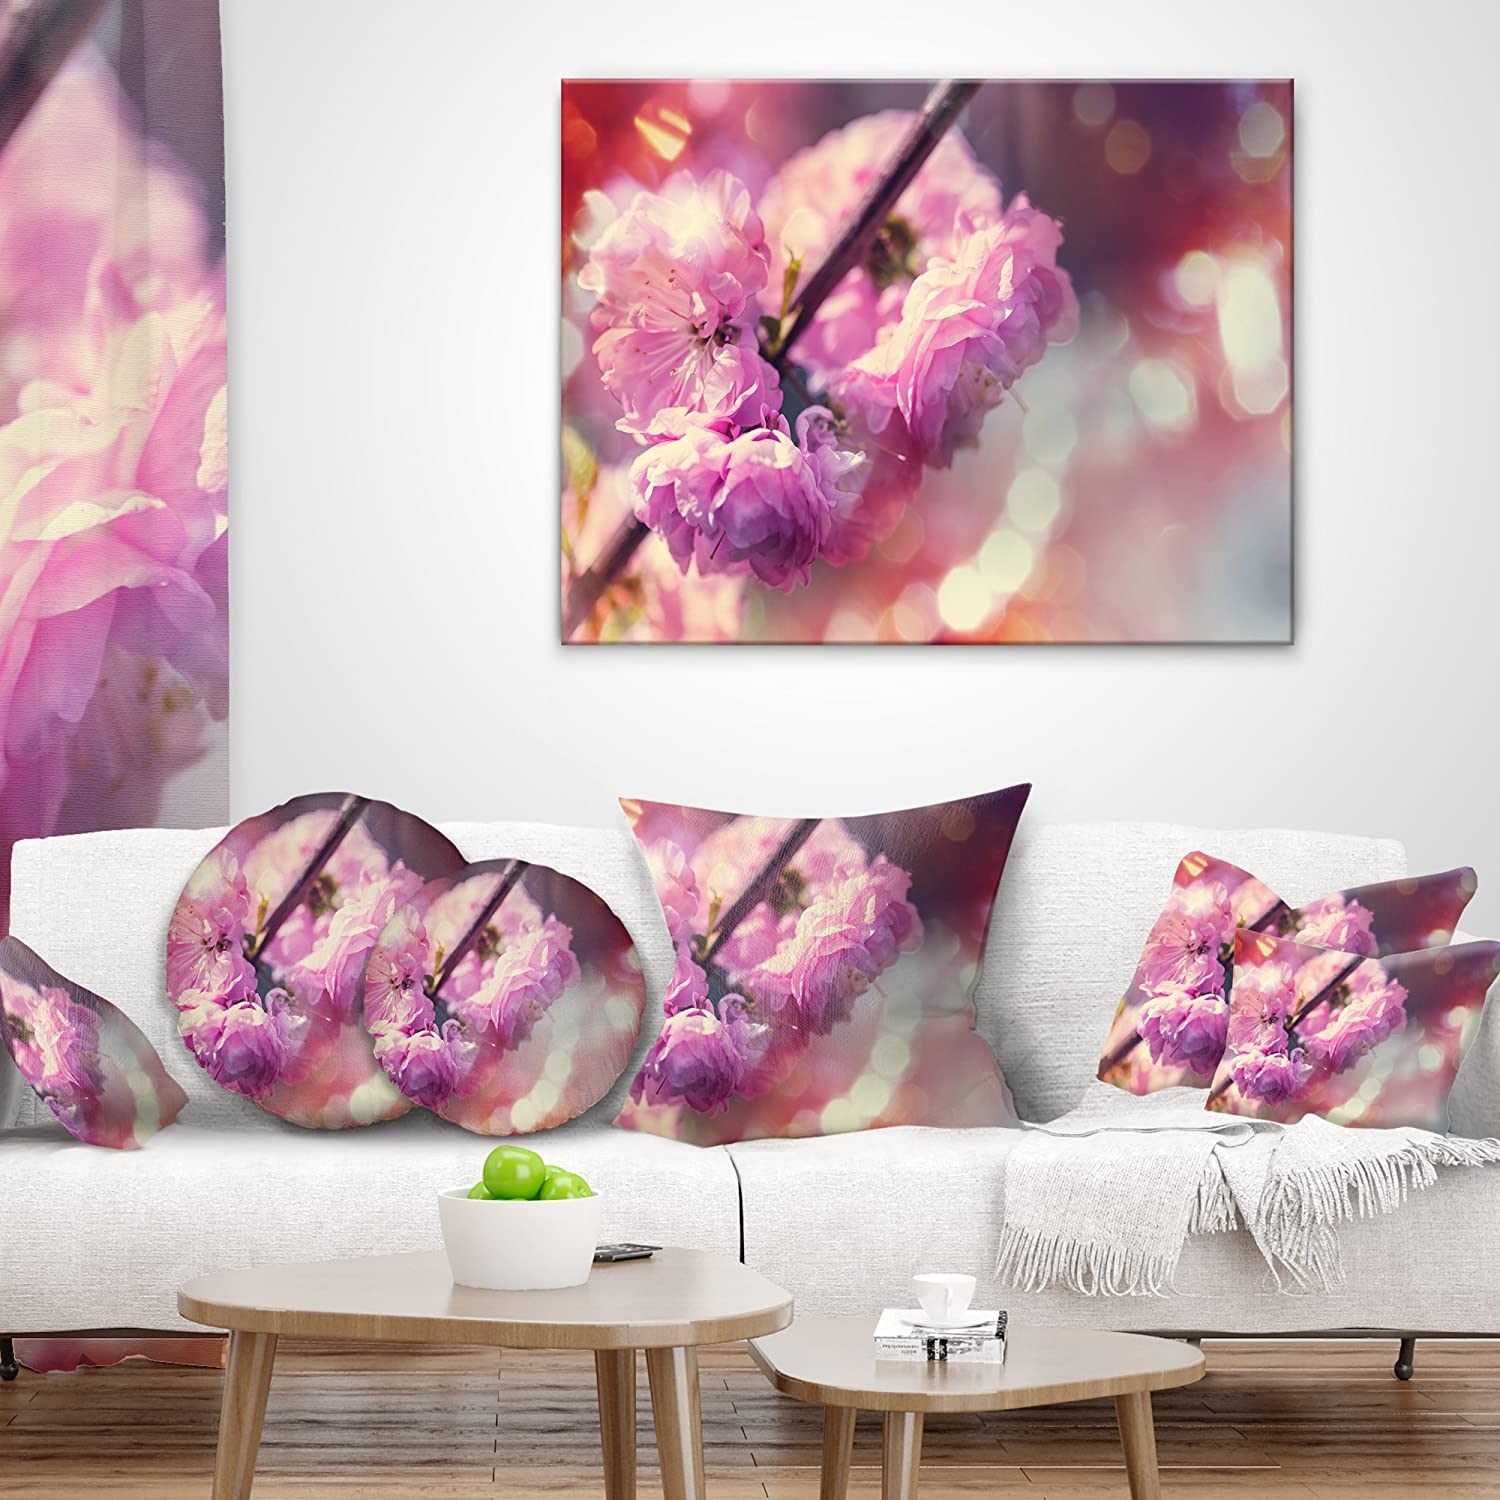 Designart CU12416-26-26 Beautiful Almond Tree Flowers Floral Throw Cushion Pillow Cover for Living Room Sofa 26 in x 26 in.